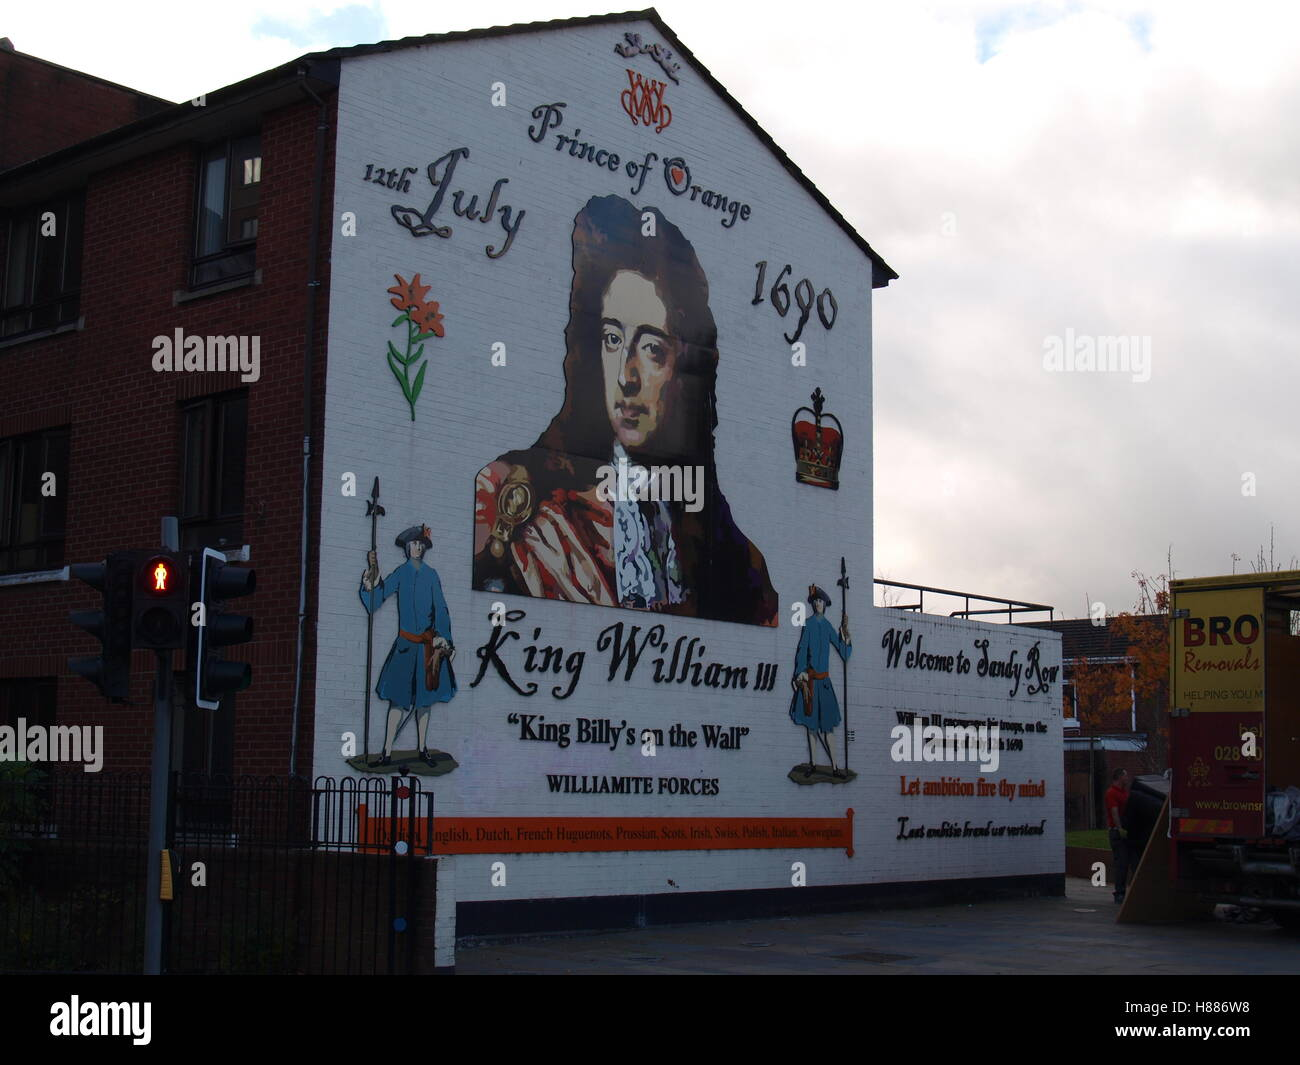 King William Billy on the Gable Wall - Stock Image